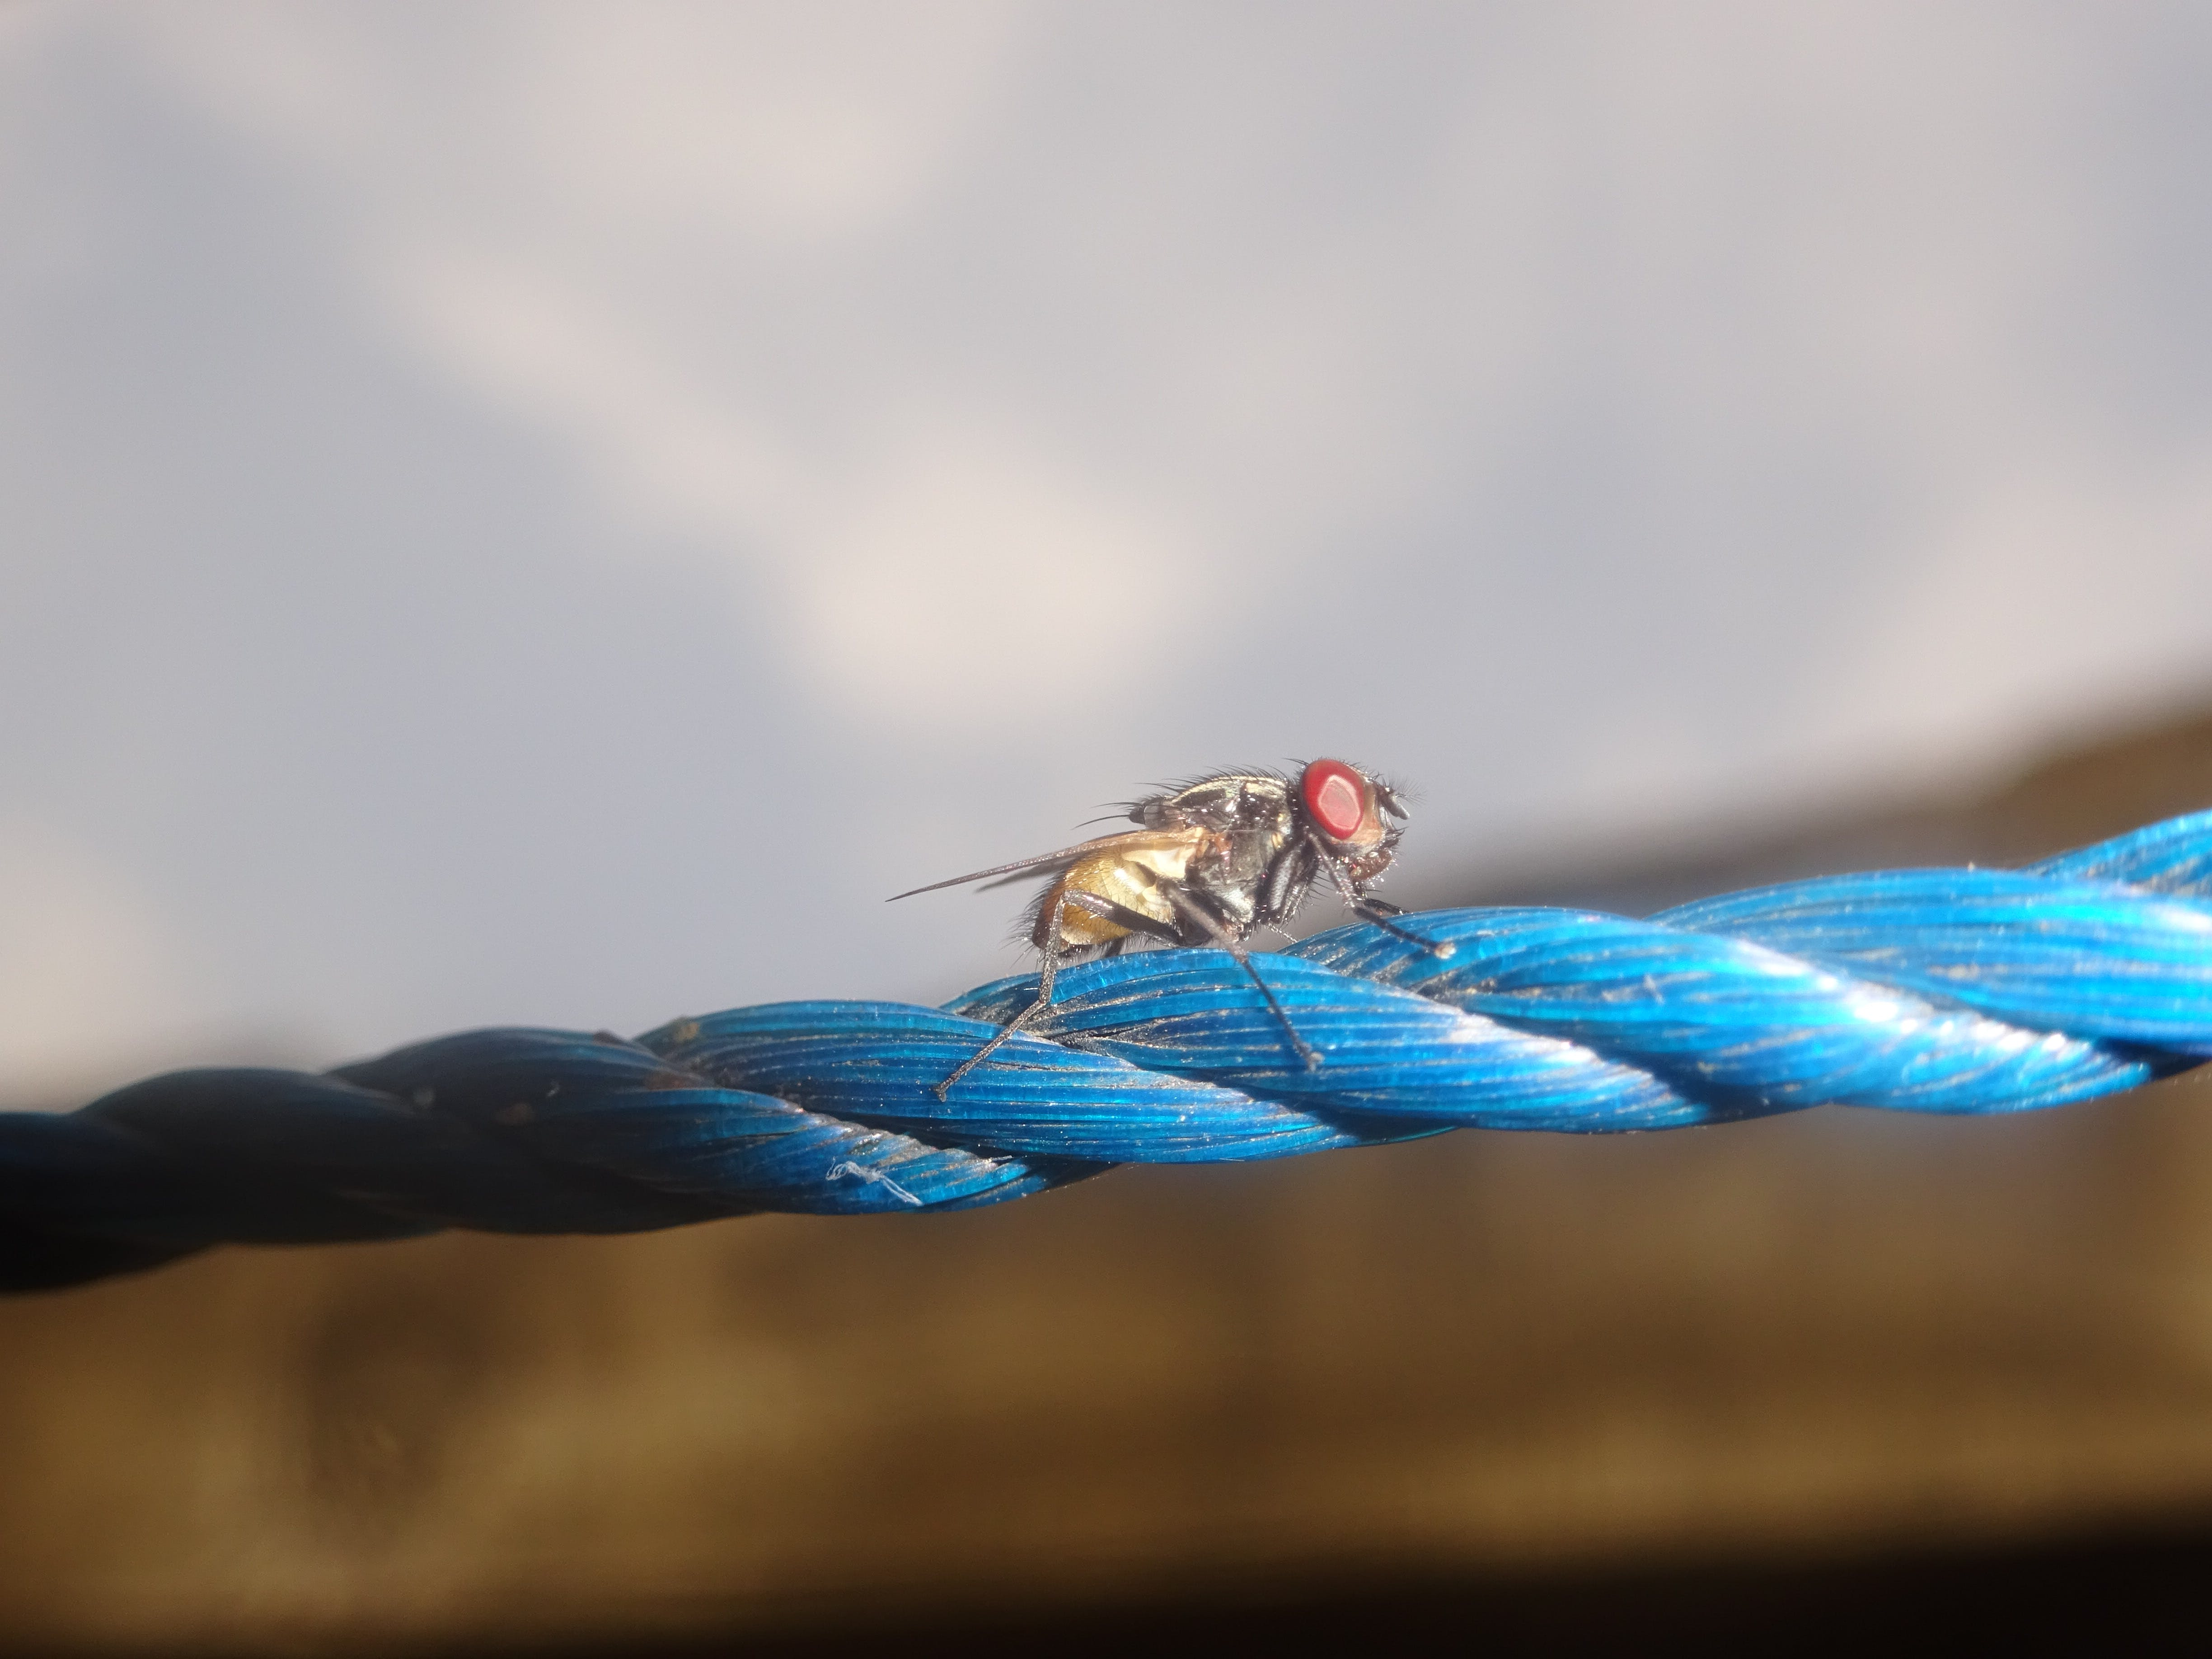 Free stock photo of animal, blue, cord, fly